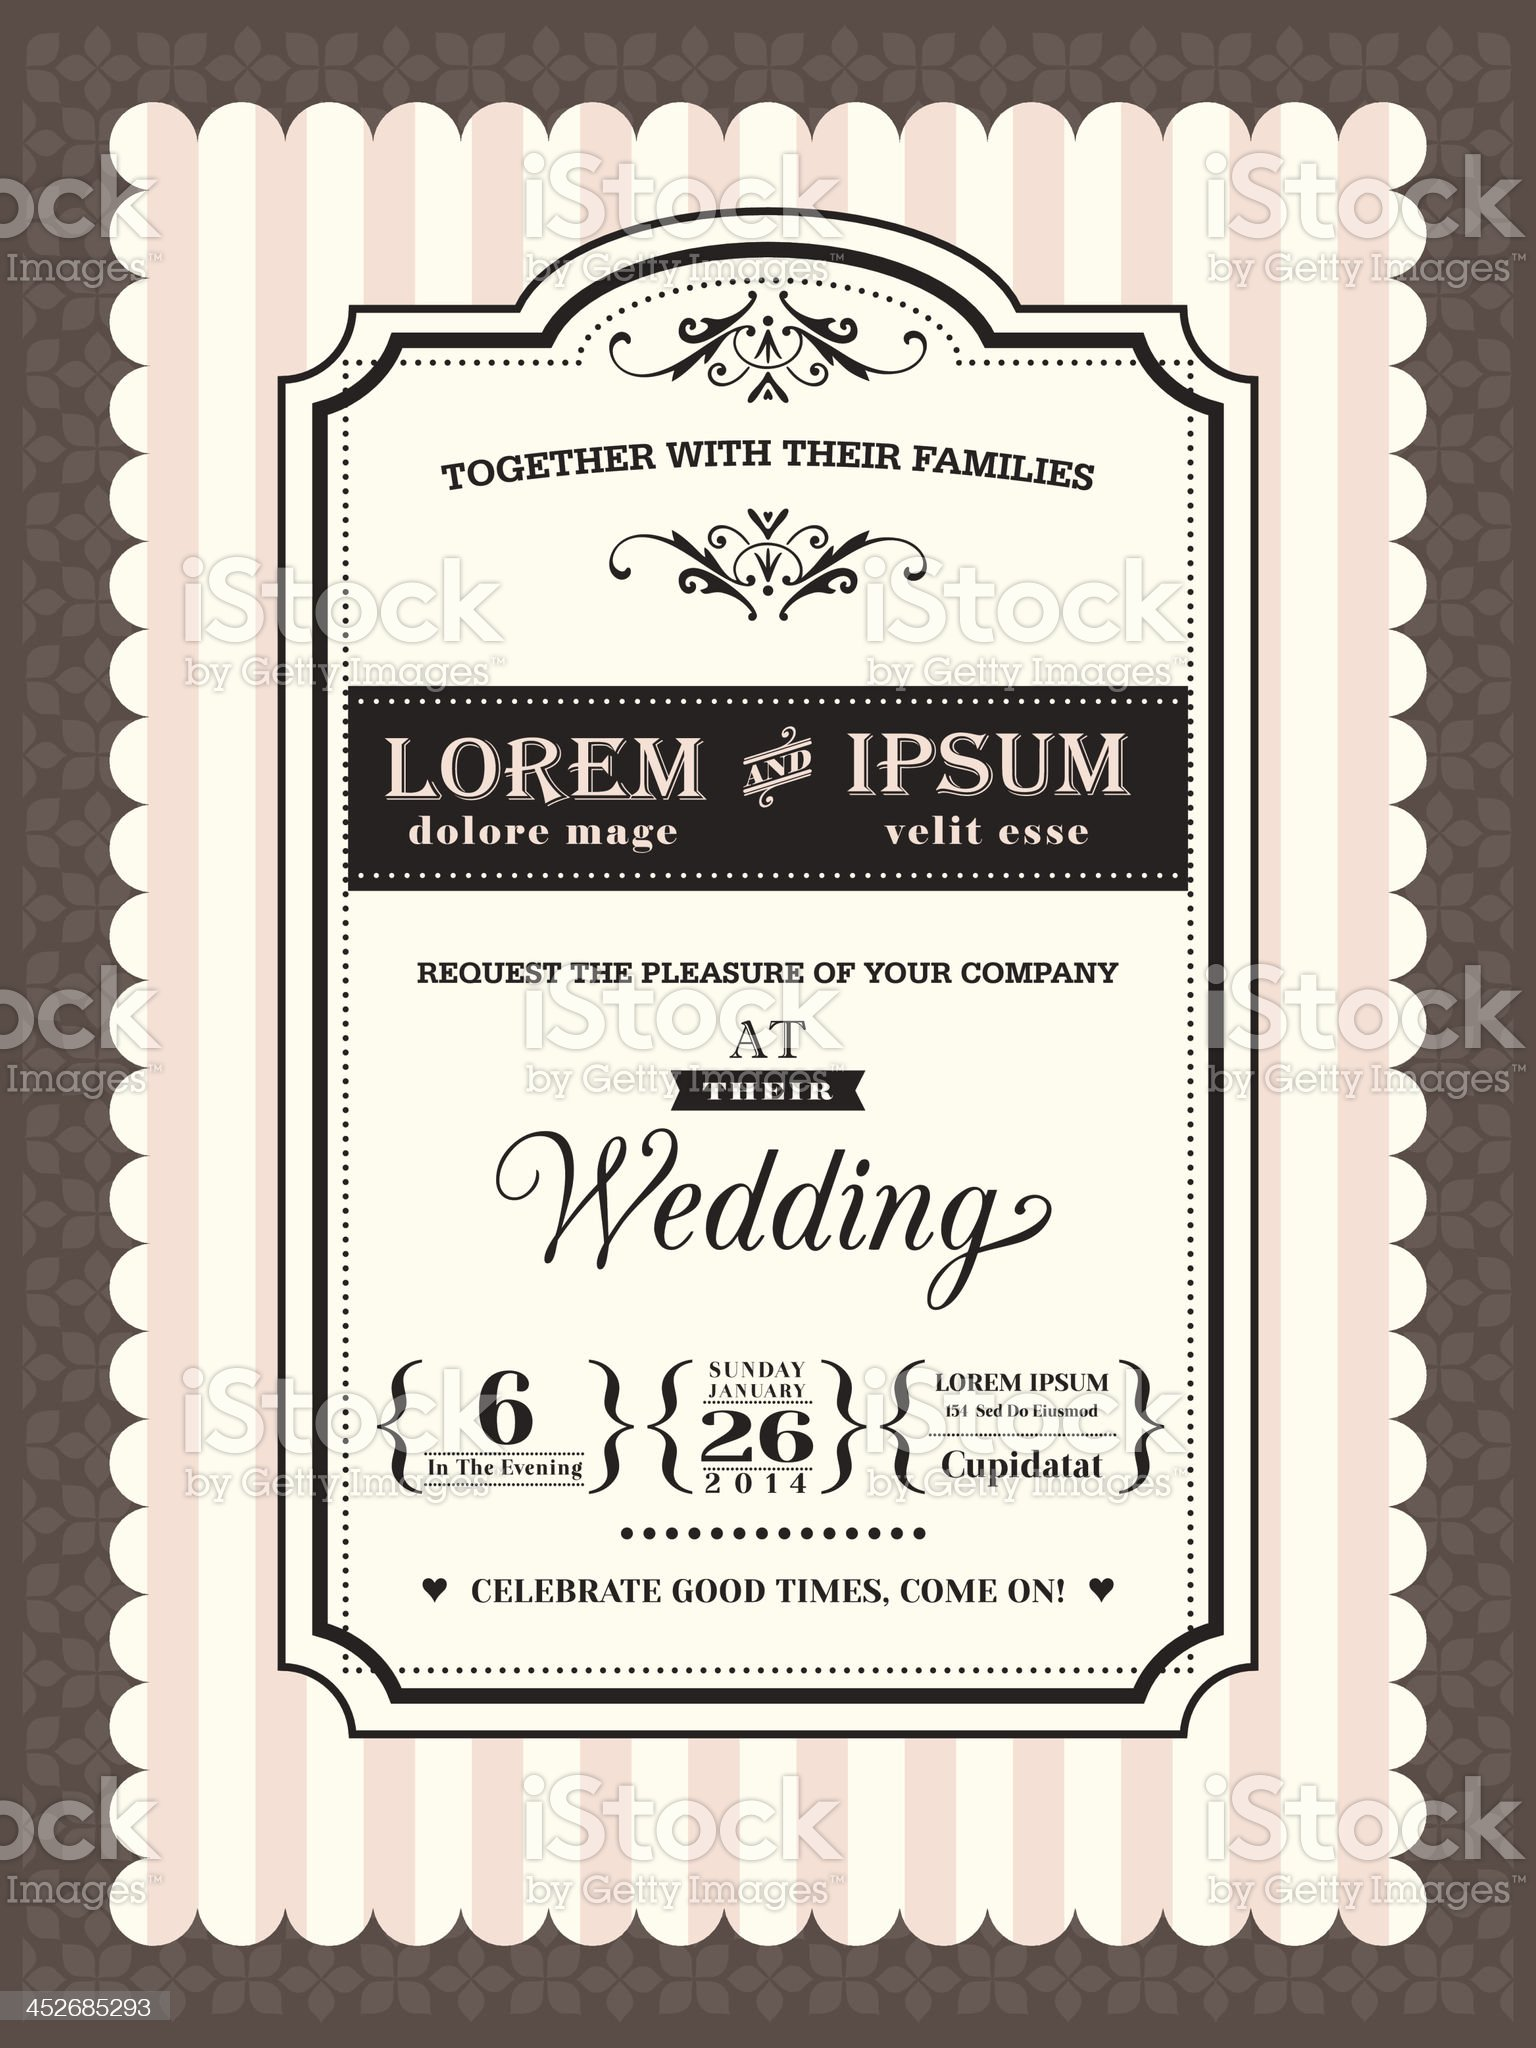 Vintage Wedding invitation border and frame template royalty-free stock vector art